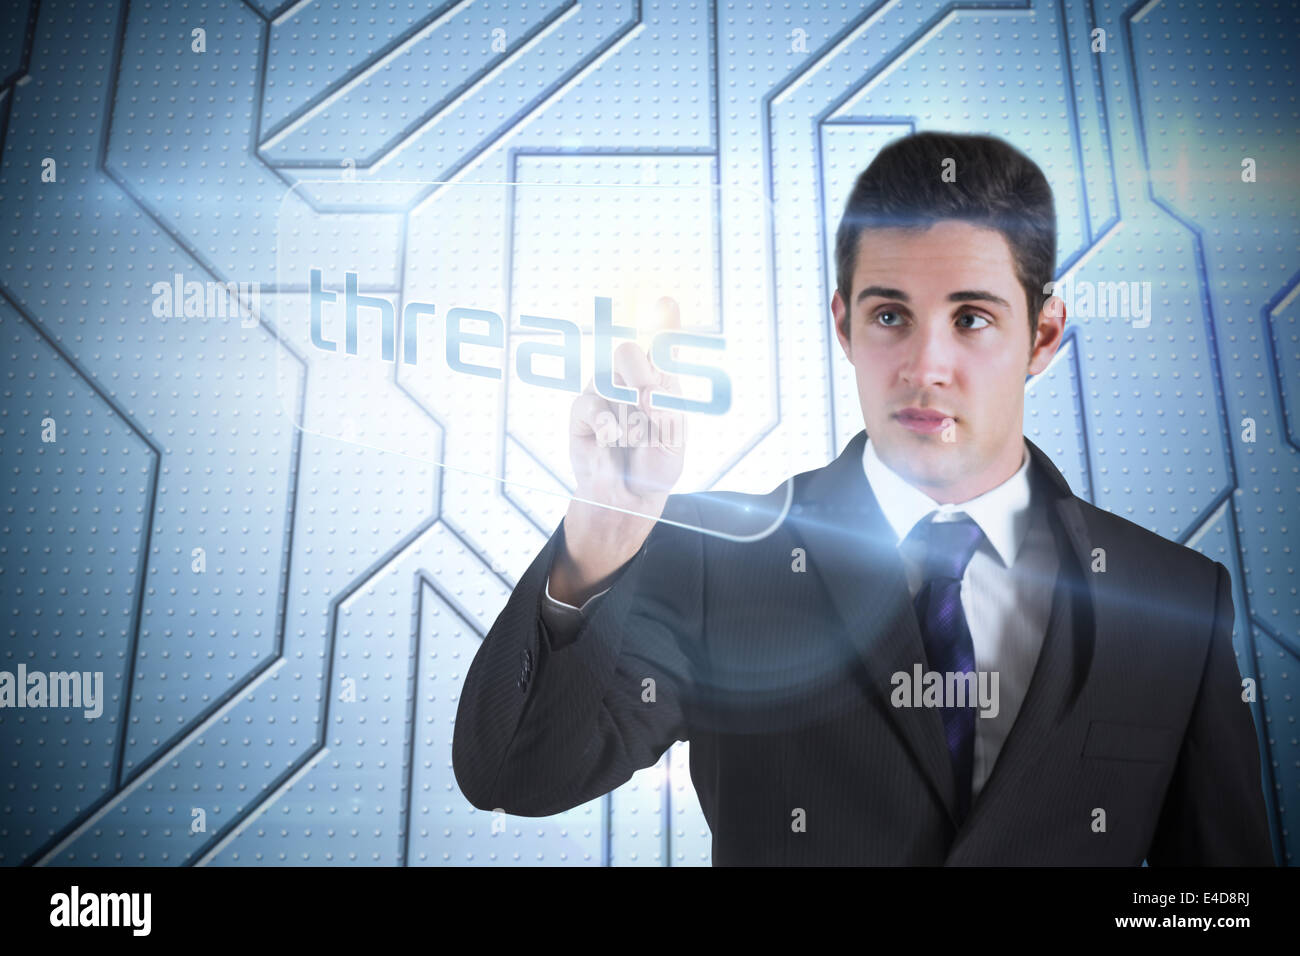 Businessman pointing to word threats - Stock Image